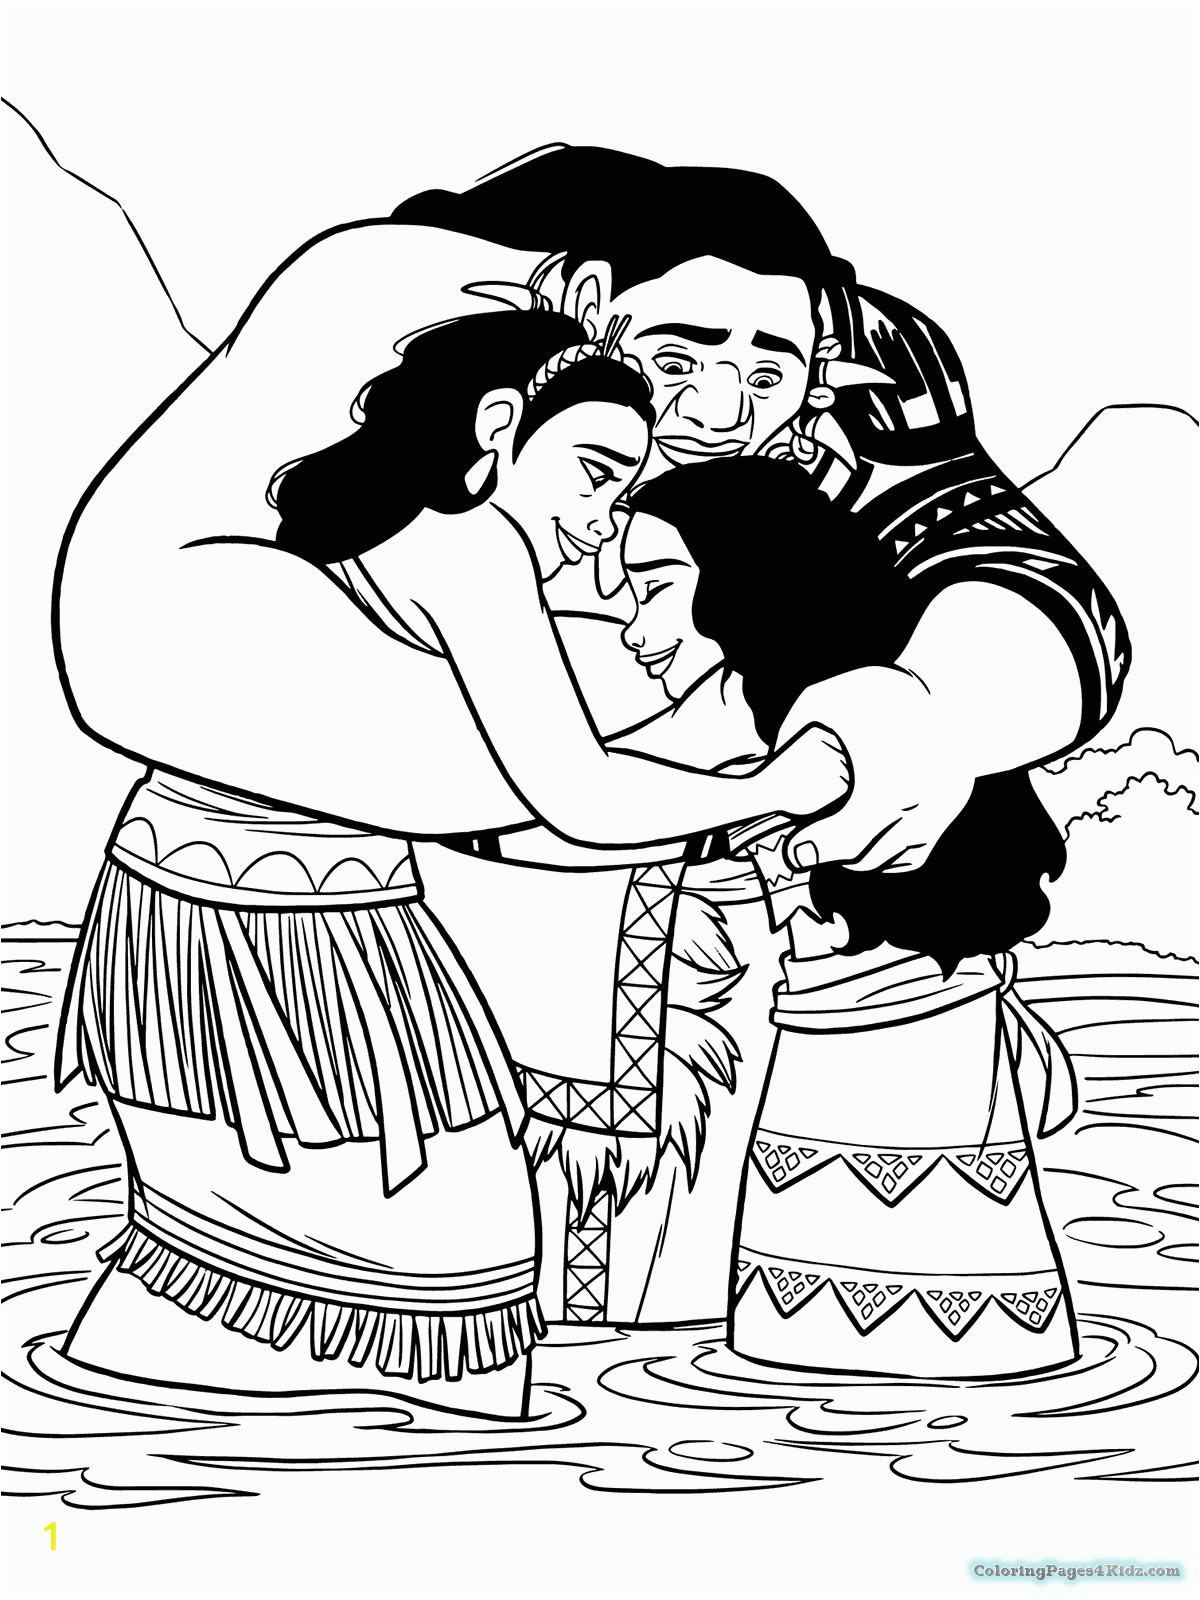 coloring easy printable for kids to print moana the